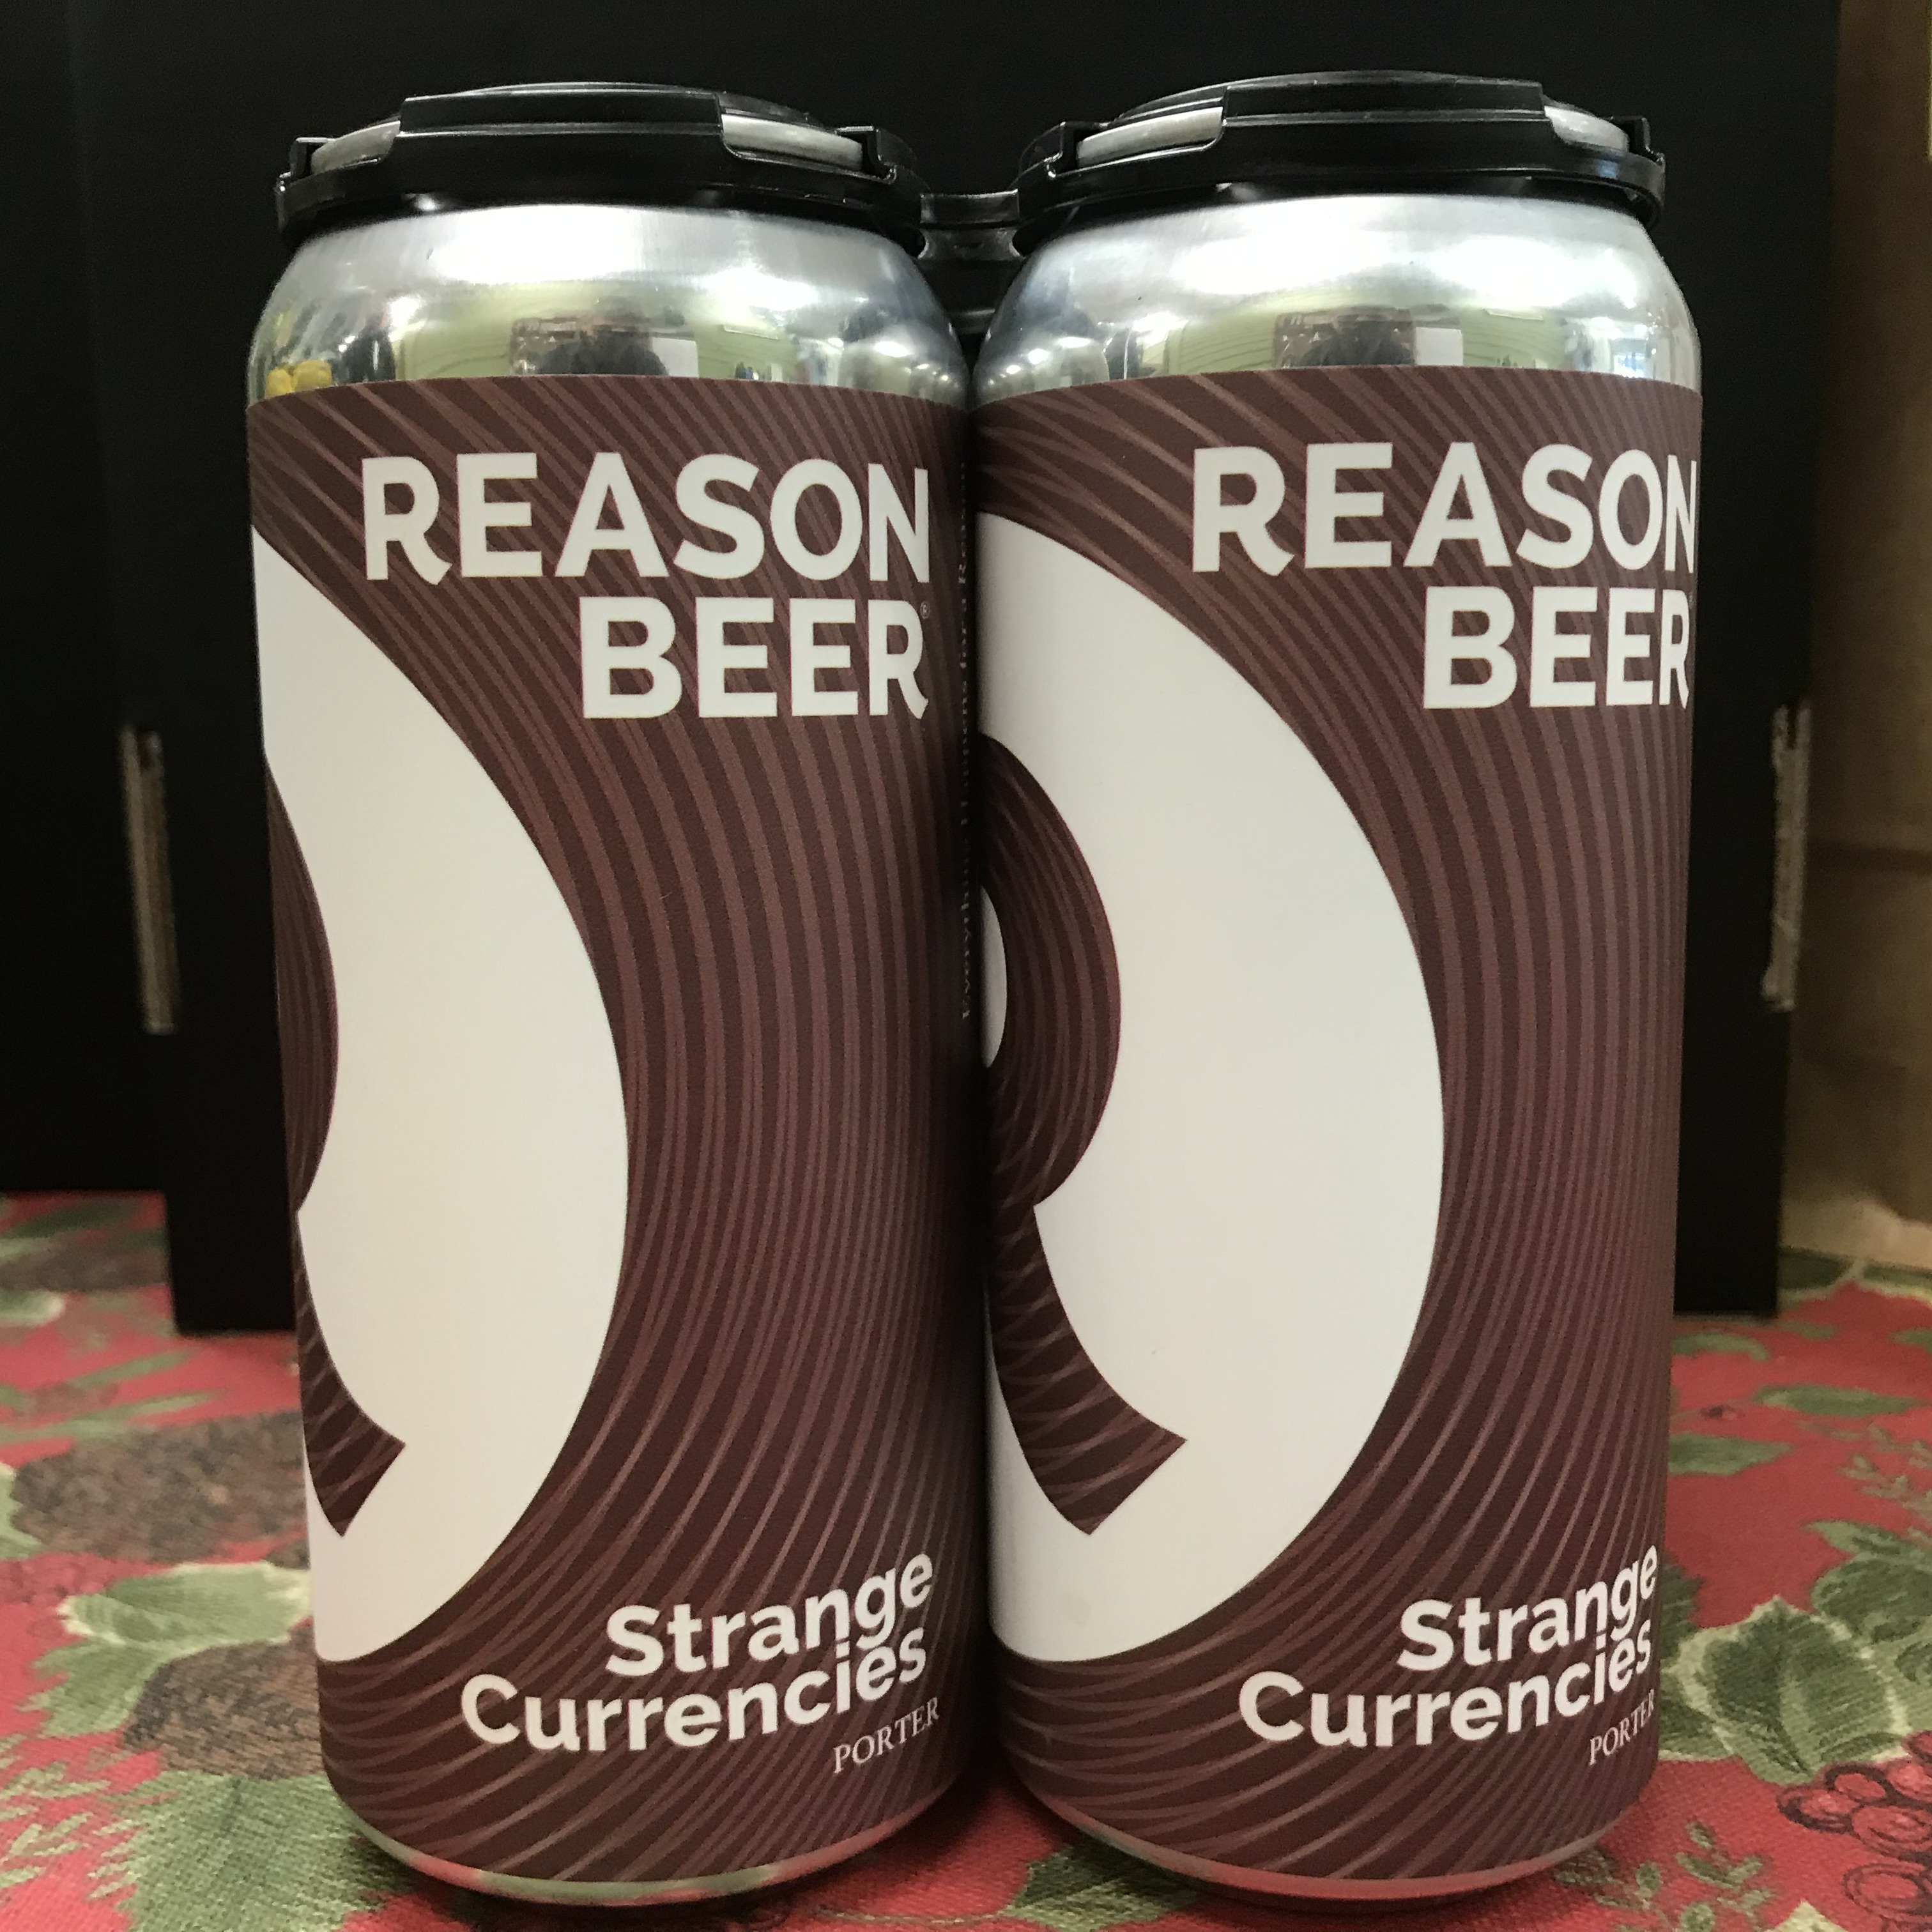 Reason Strange Currencies Porter 4 x 1 pint cans